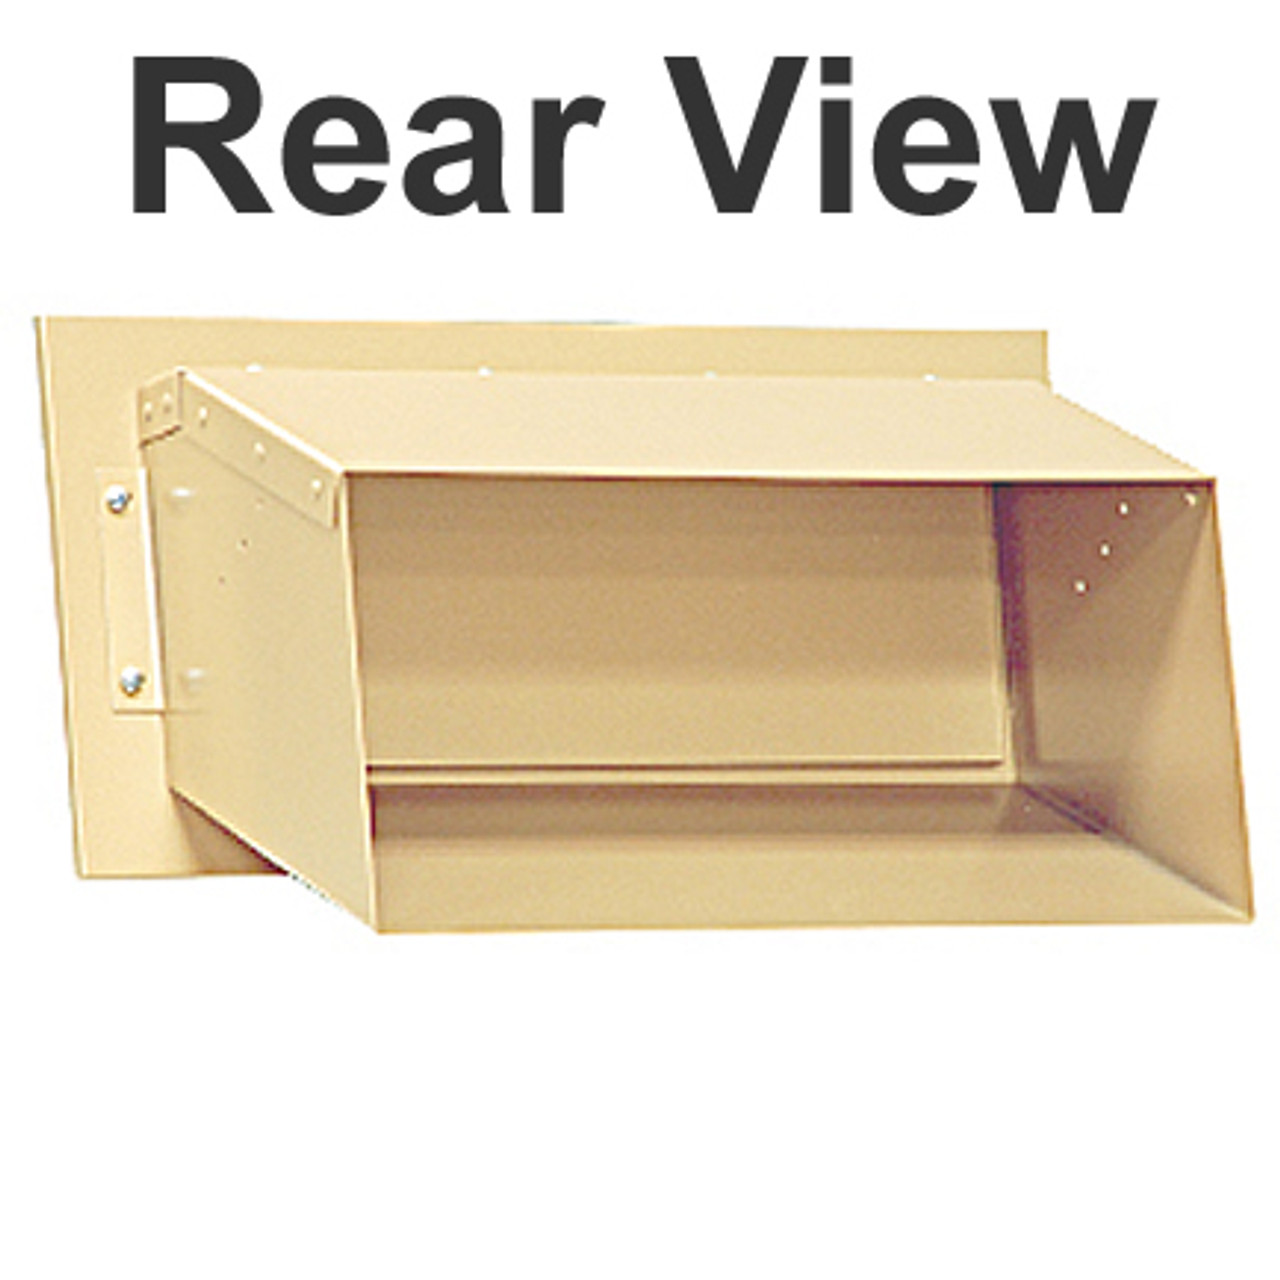 Wall Mail Drop Slot S2255 rear view